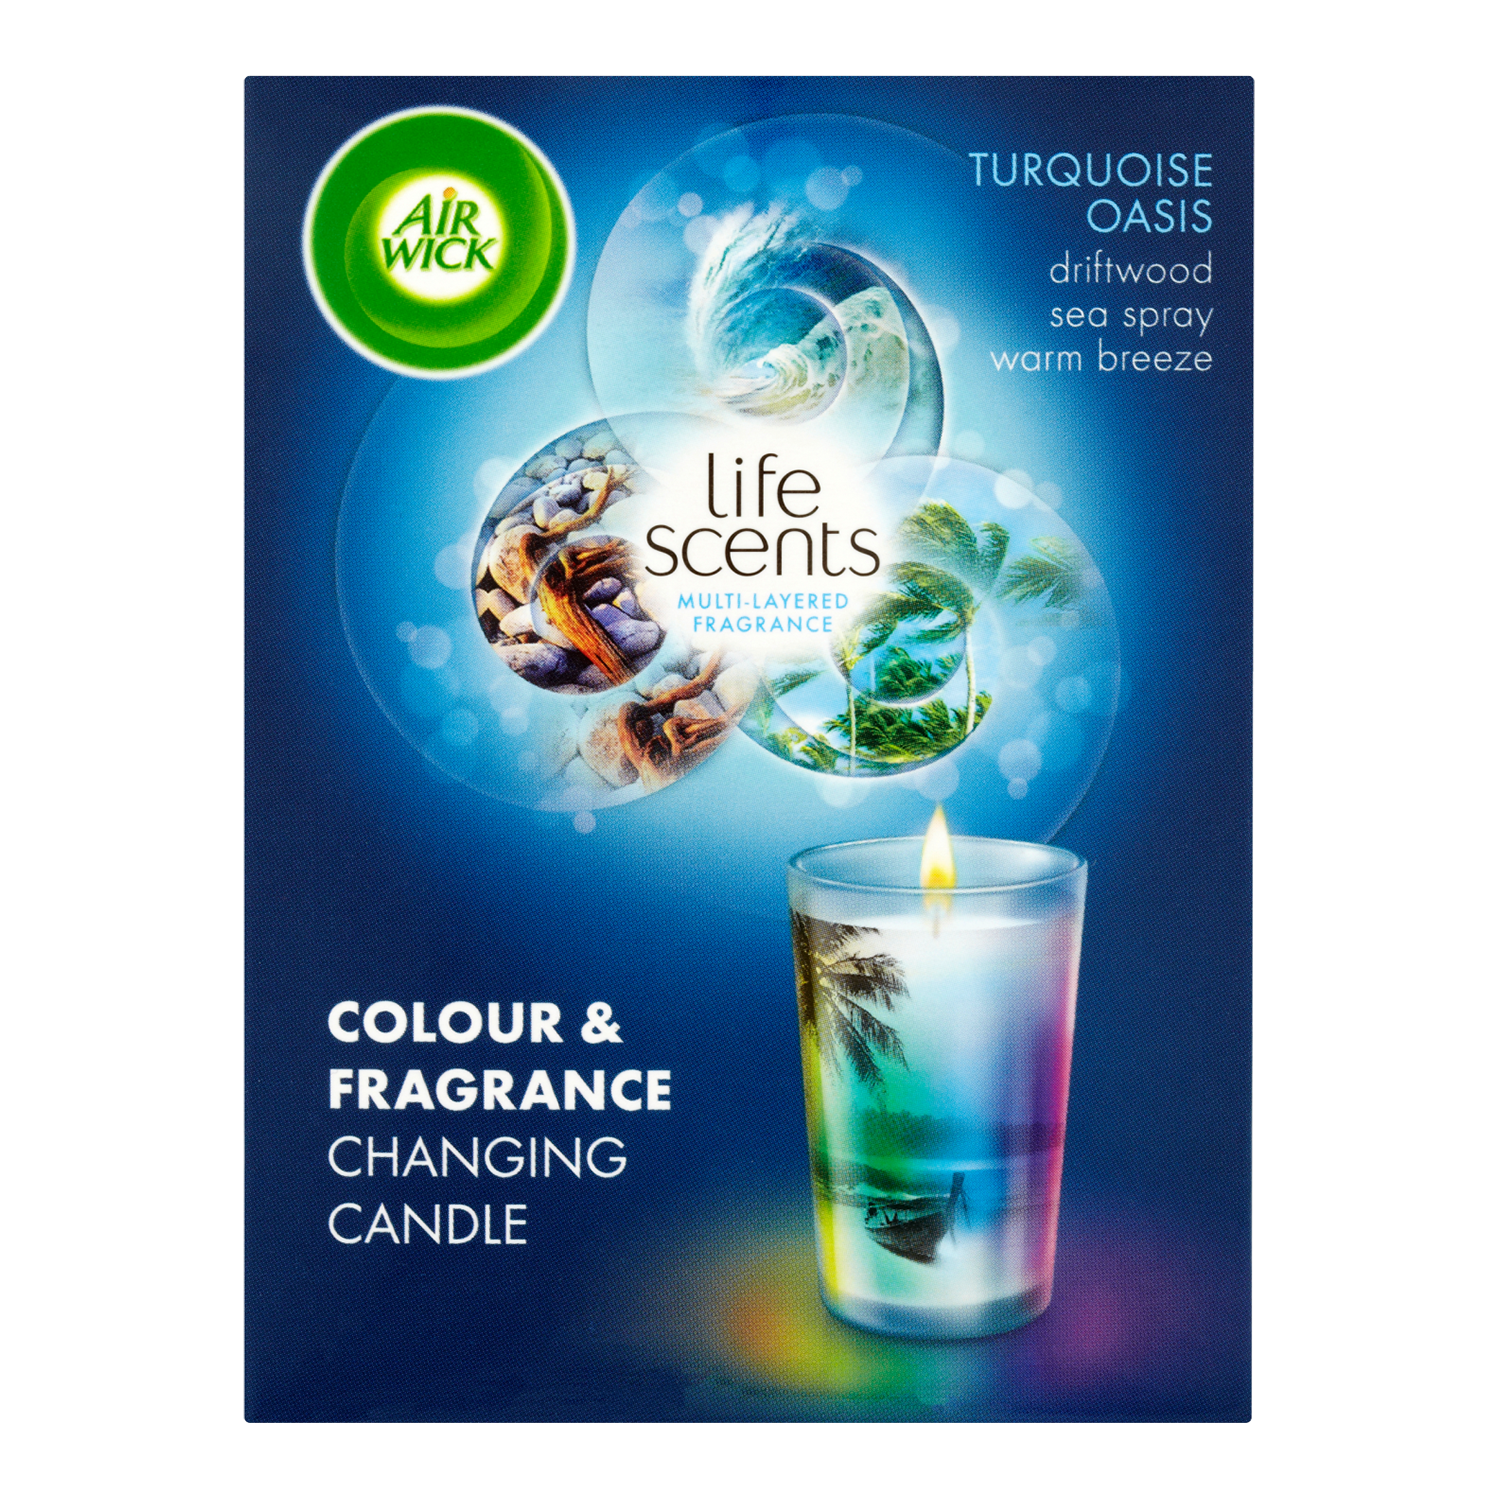 Air Wick Candle Life Scents Turquoise Oasis 140 g